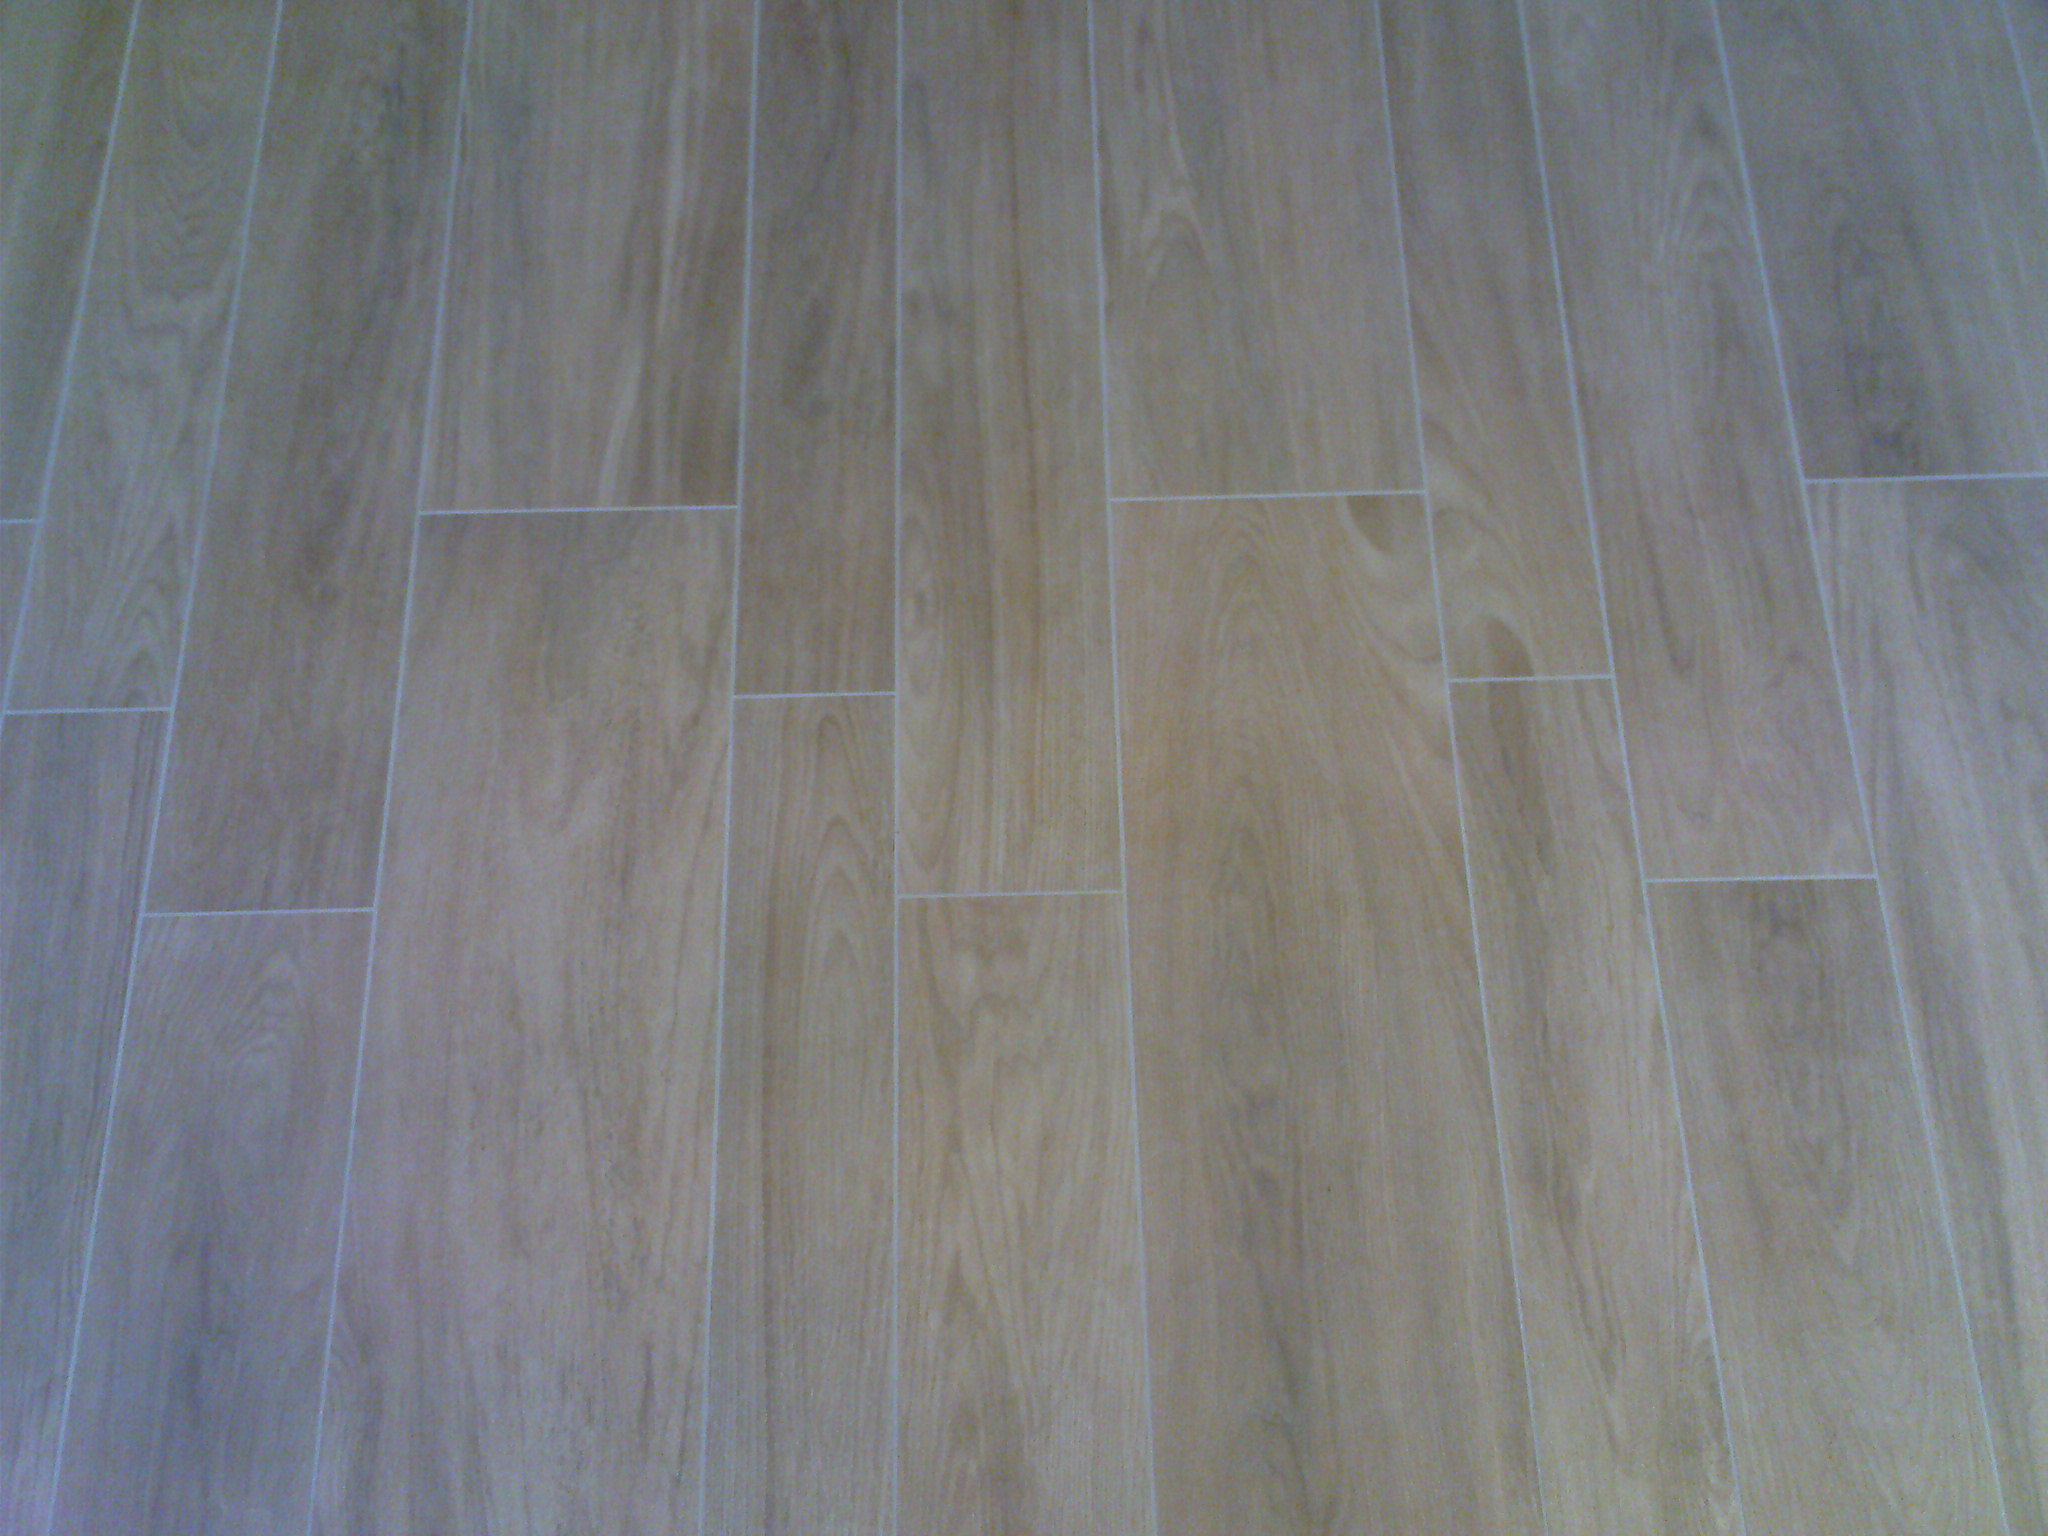 Carrelage design parquet sur carrelage moderne design for Carrelage style parquet